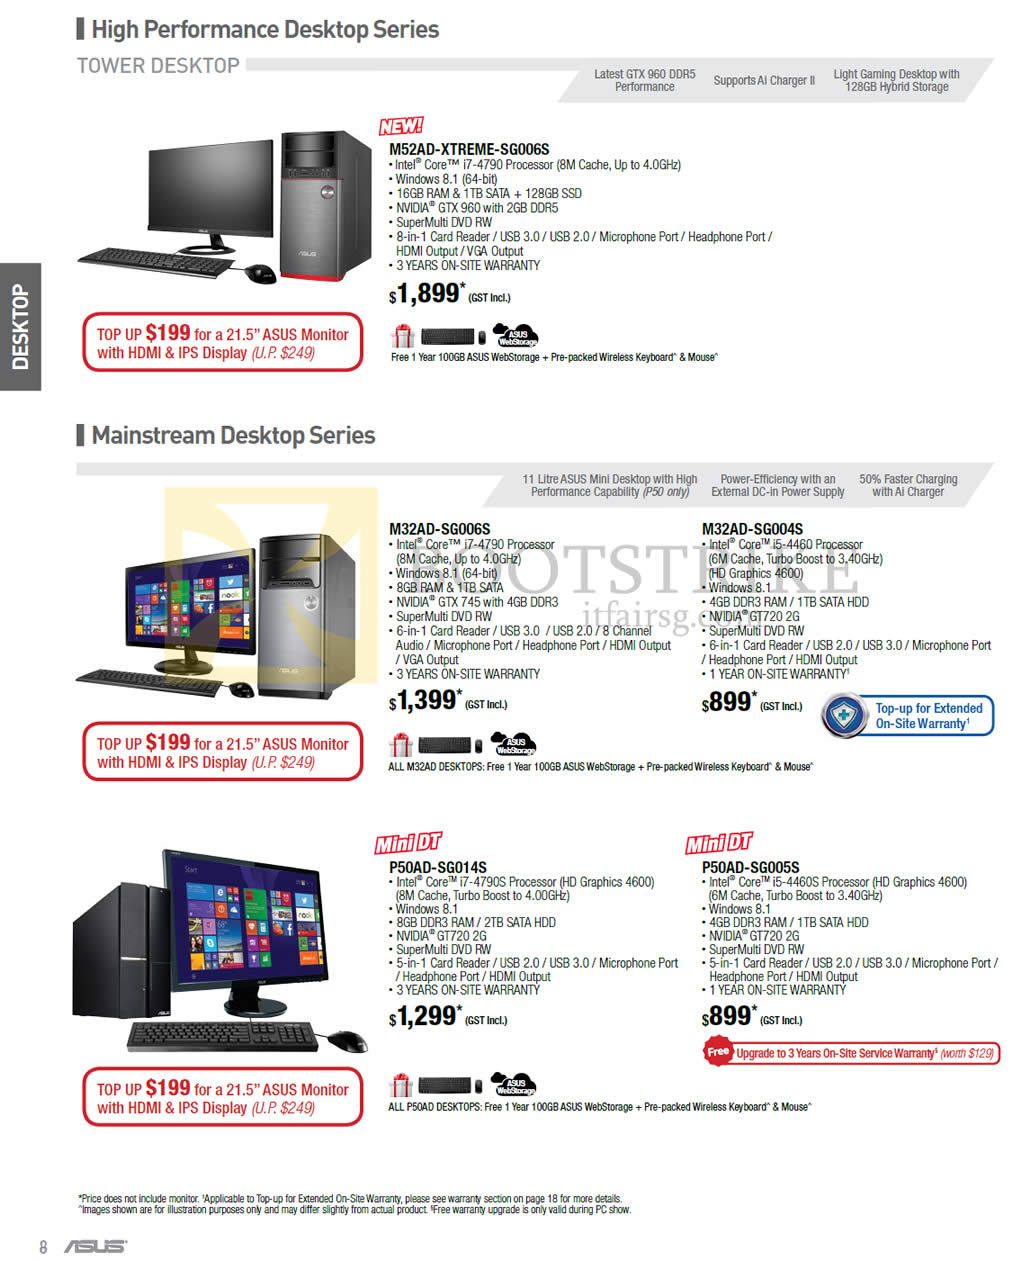 PC SHOW 2015 price list image brochure of ASUS Desktop PC M52AD-XTREME-SG006S, M32AD-SG006S, M32AD-SG004S, P50AD-SG014S, P50AD-SG005S